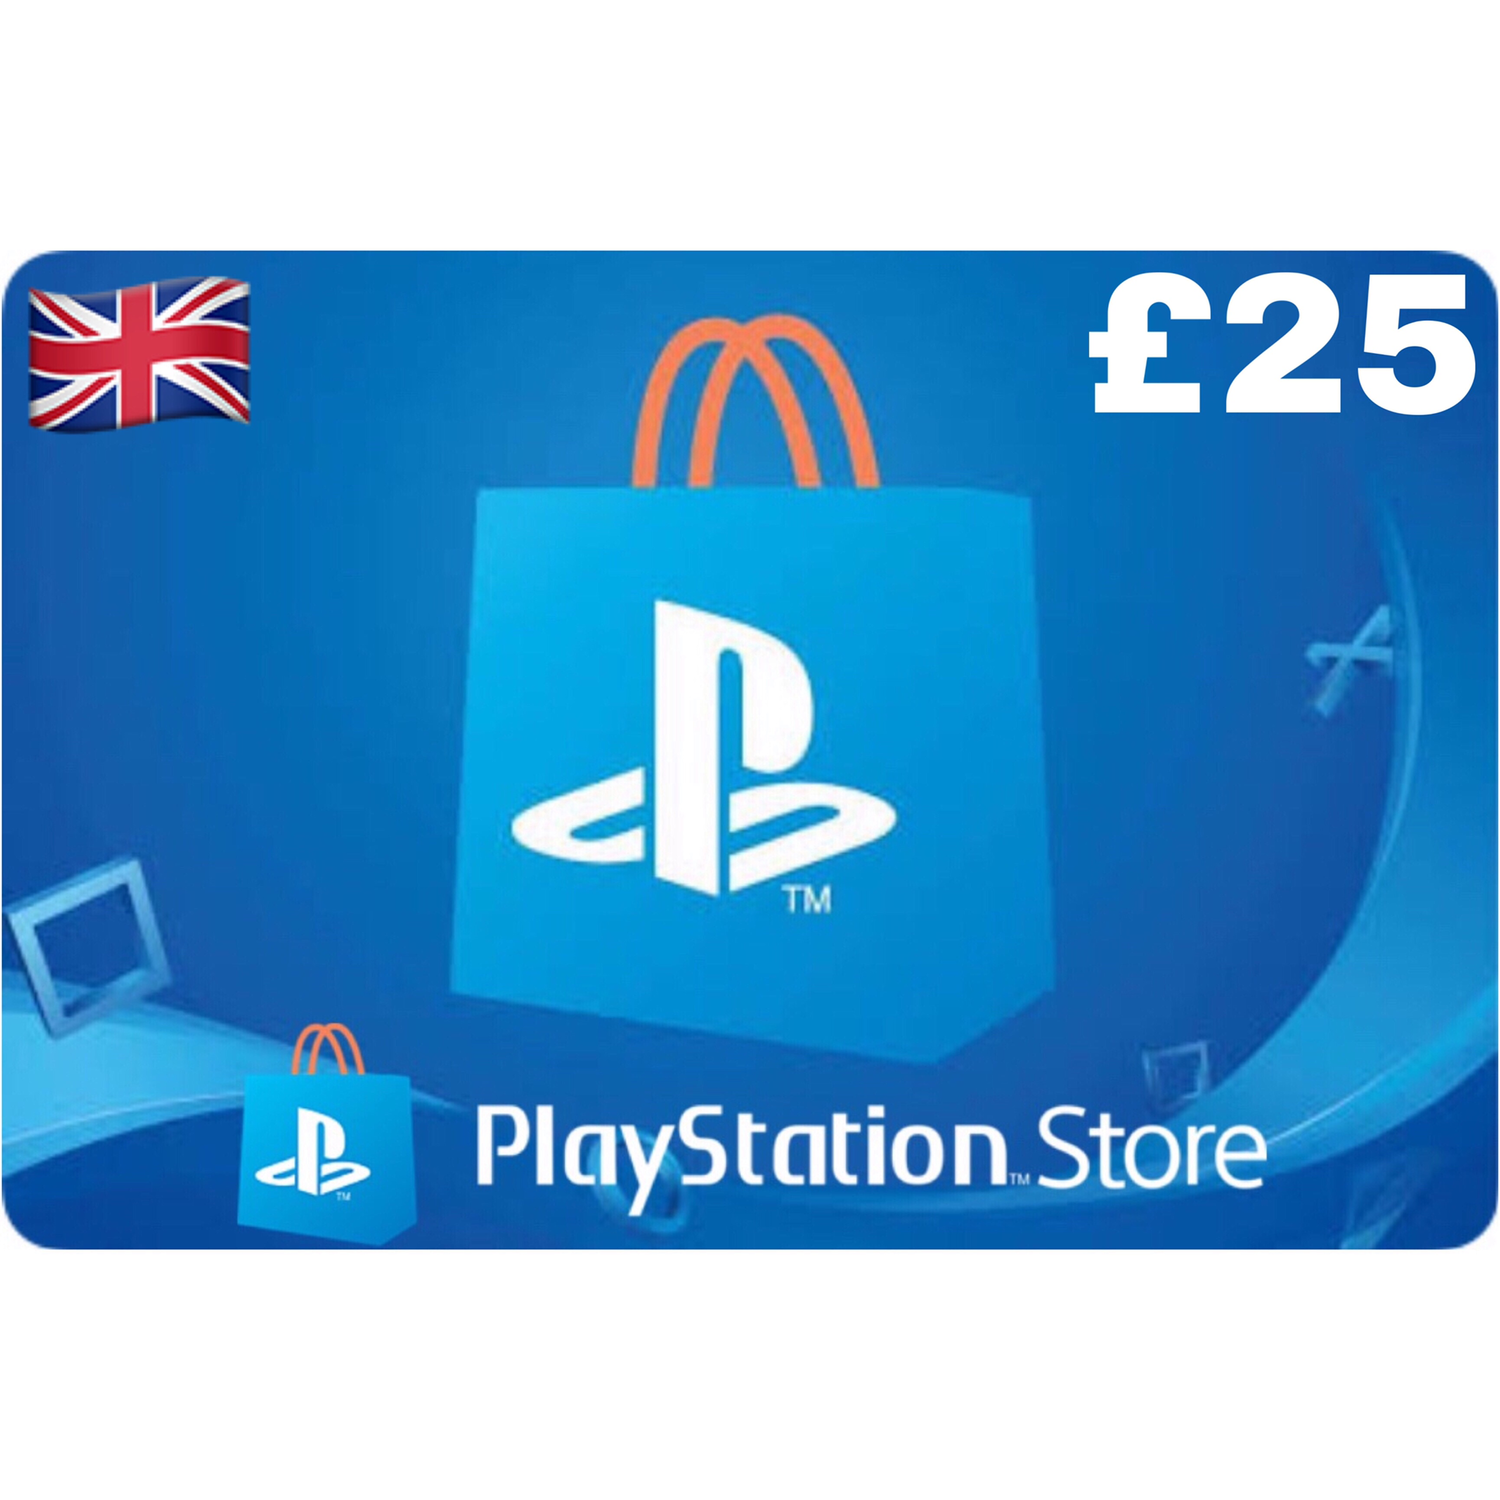 PSN Card - Playstation Network UK £25